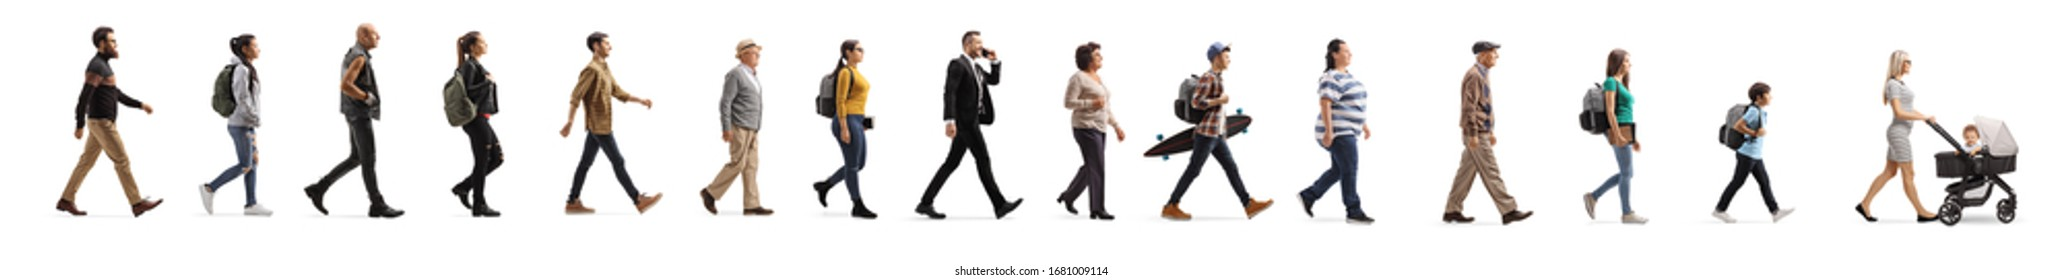 Queue of young and elderly people walking isolated on white background